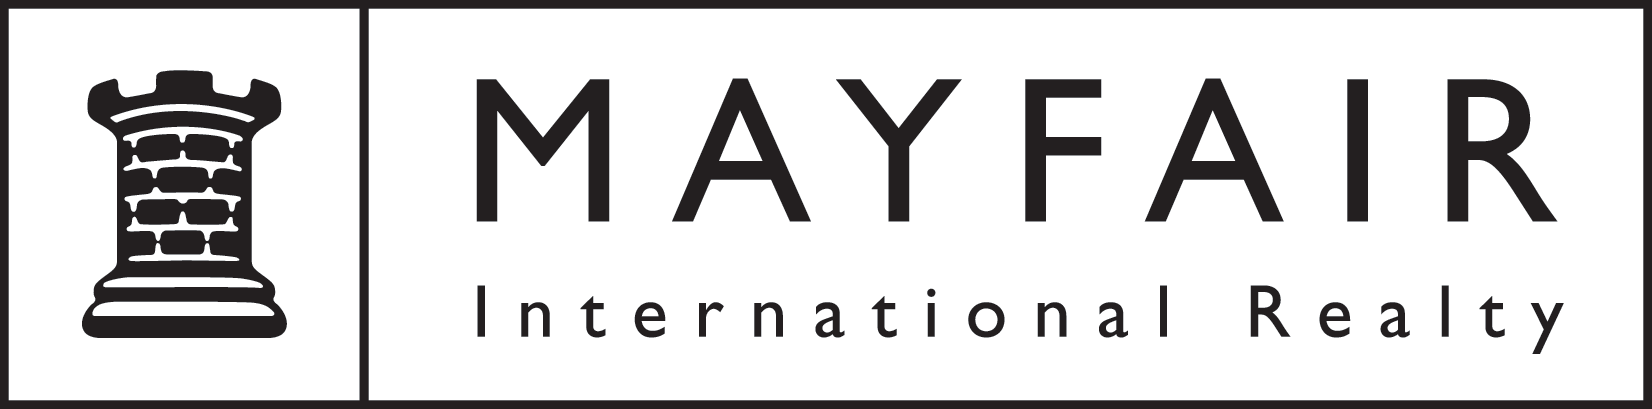 Mayfair Realty_Black-White.png